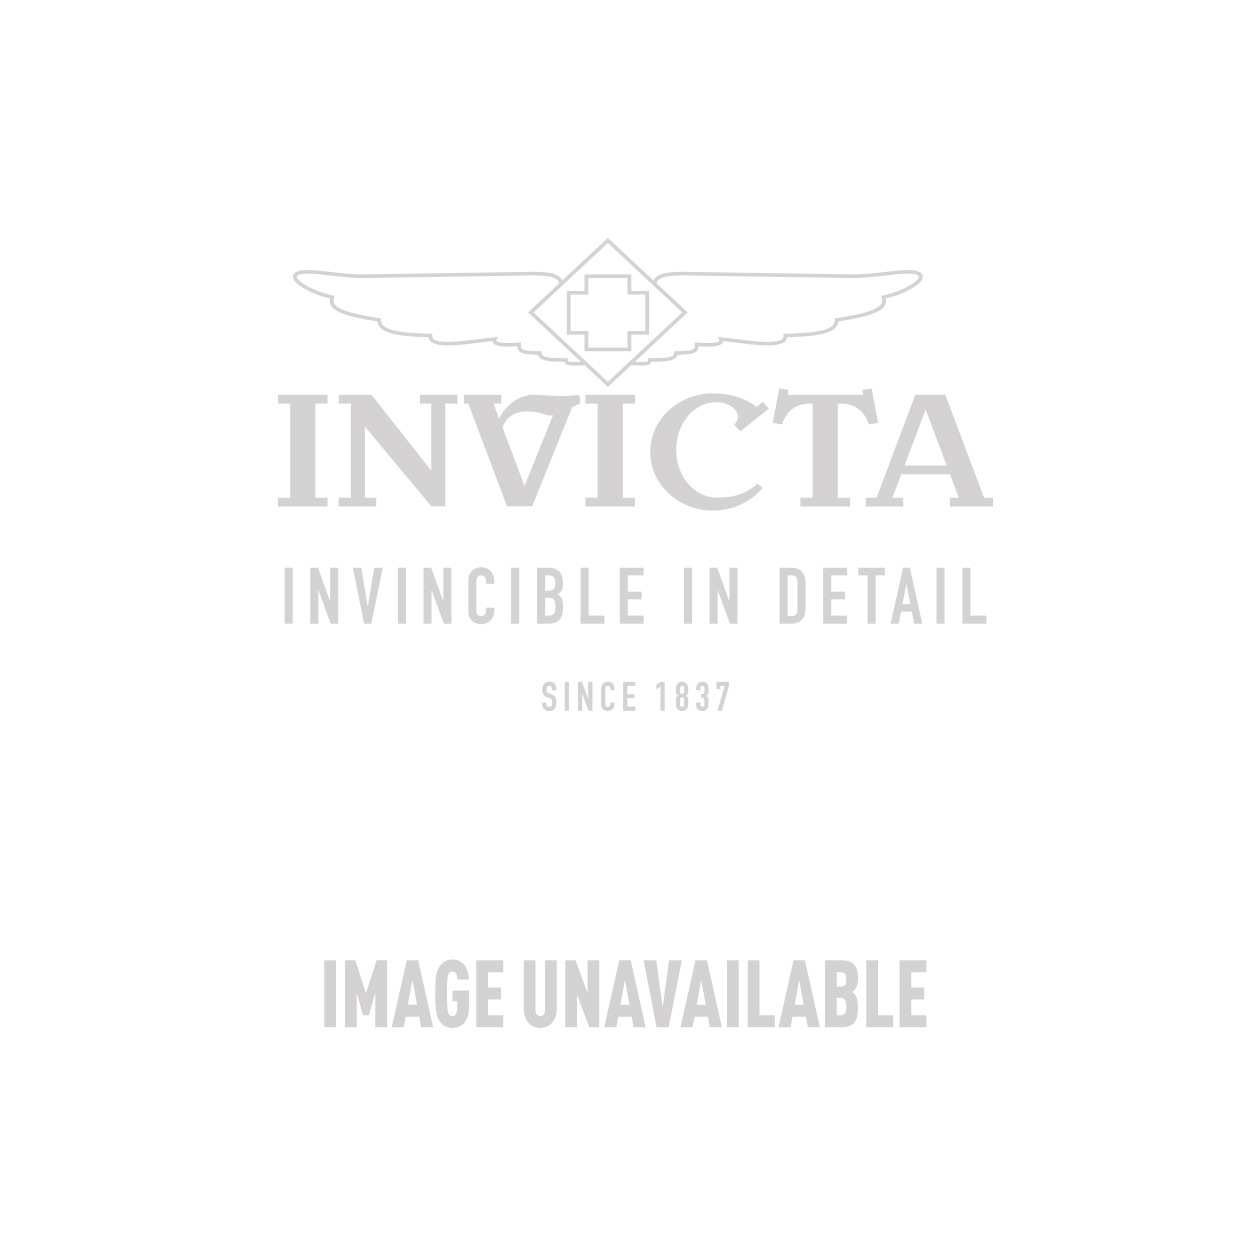 Invicta S1 Rally Quartz Watch - Stainless Steel case with Black tone Silicone band - Model 90156